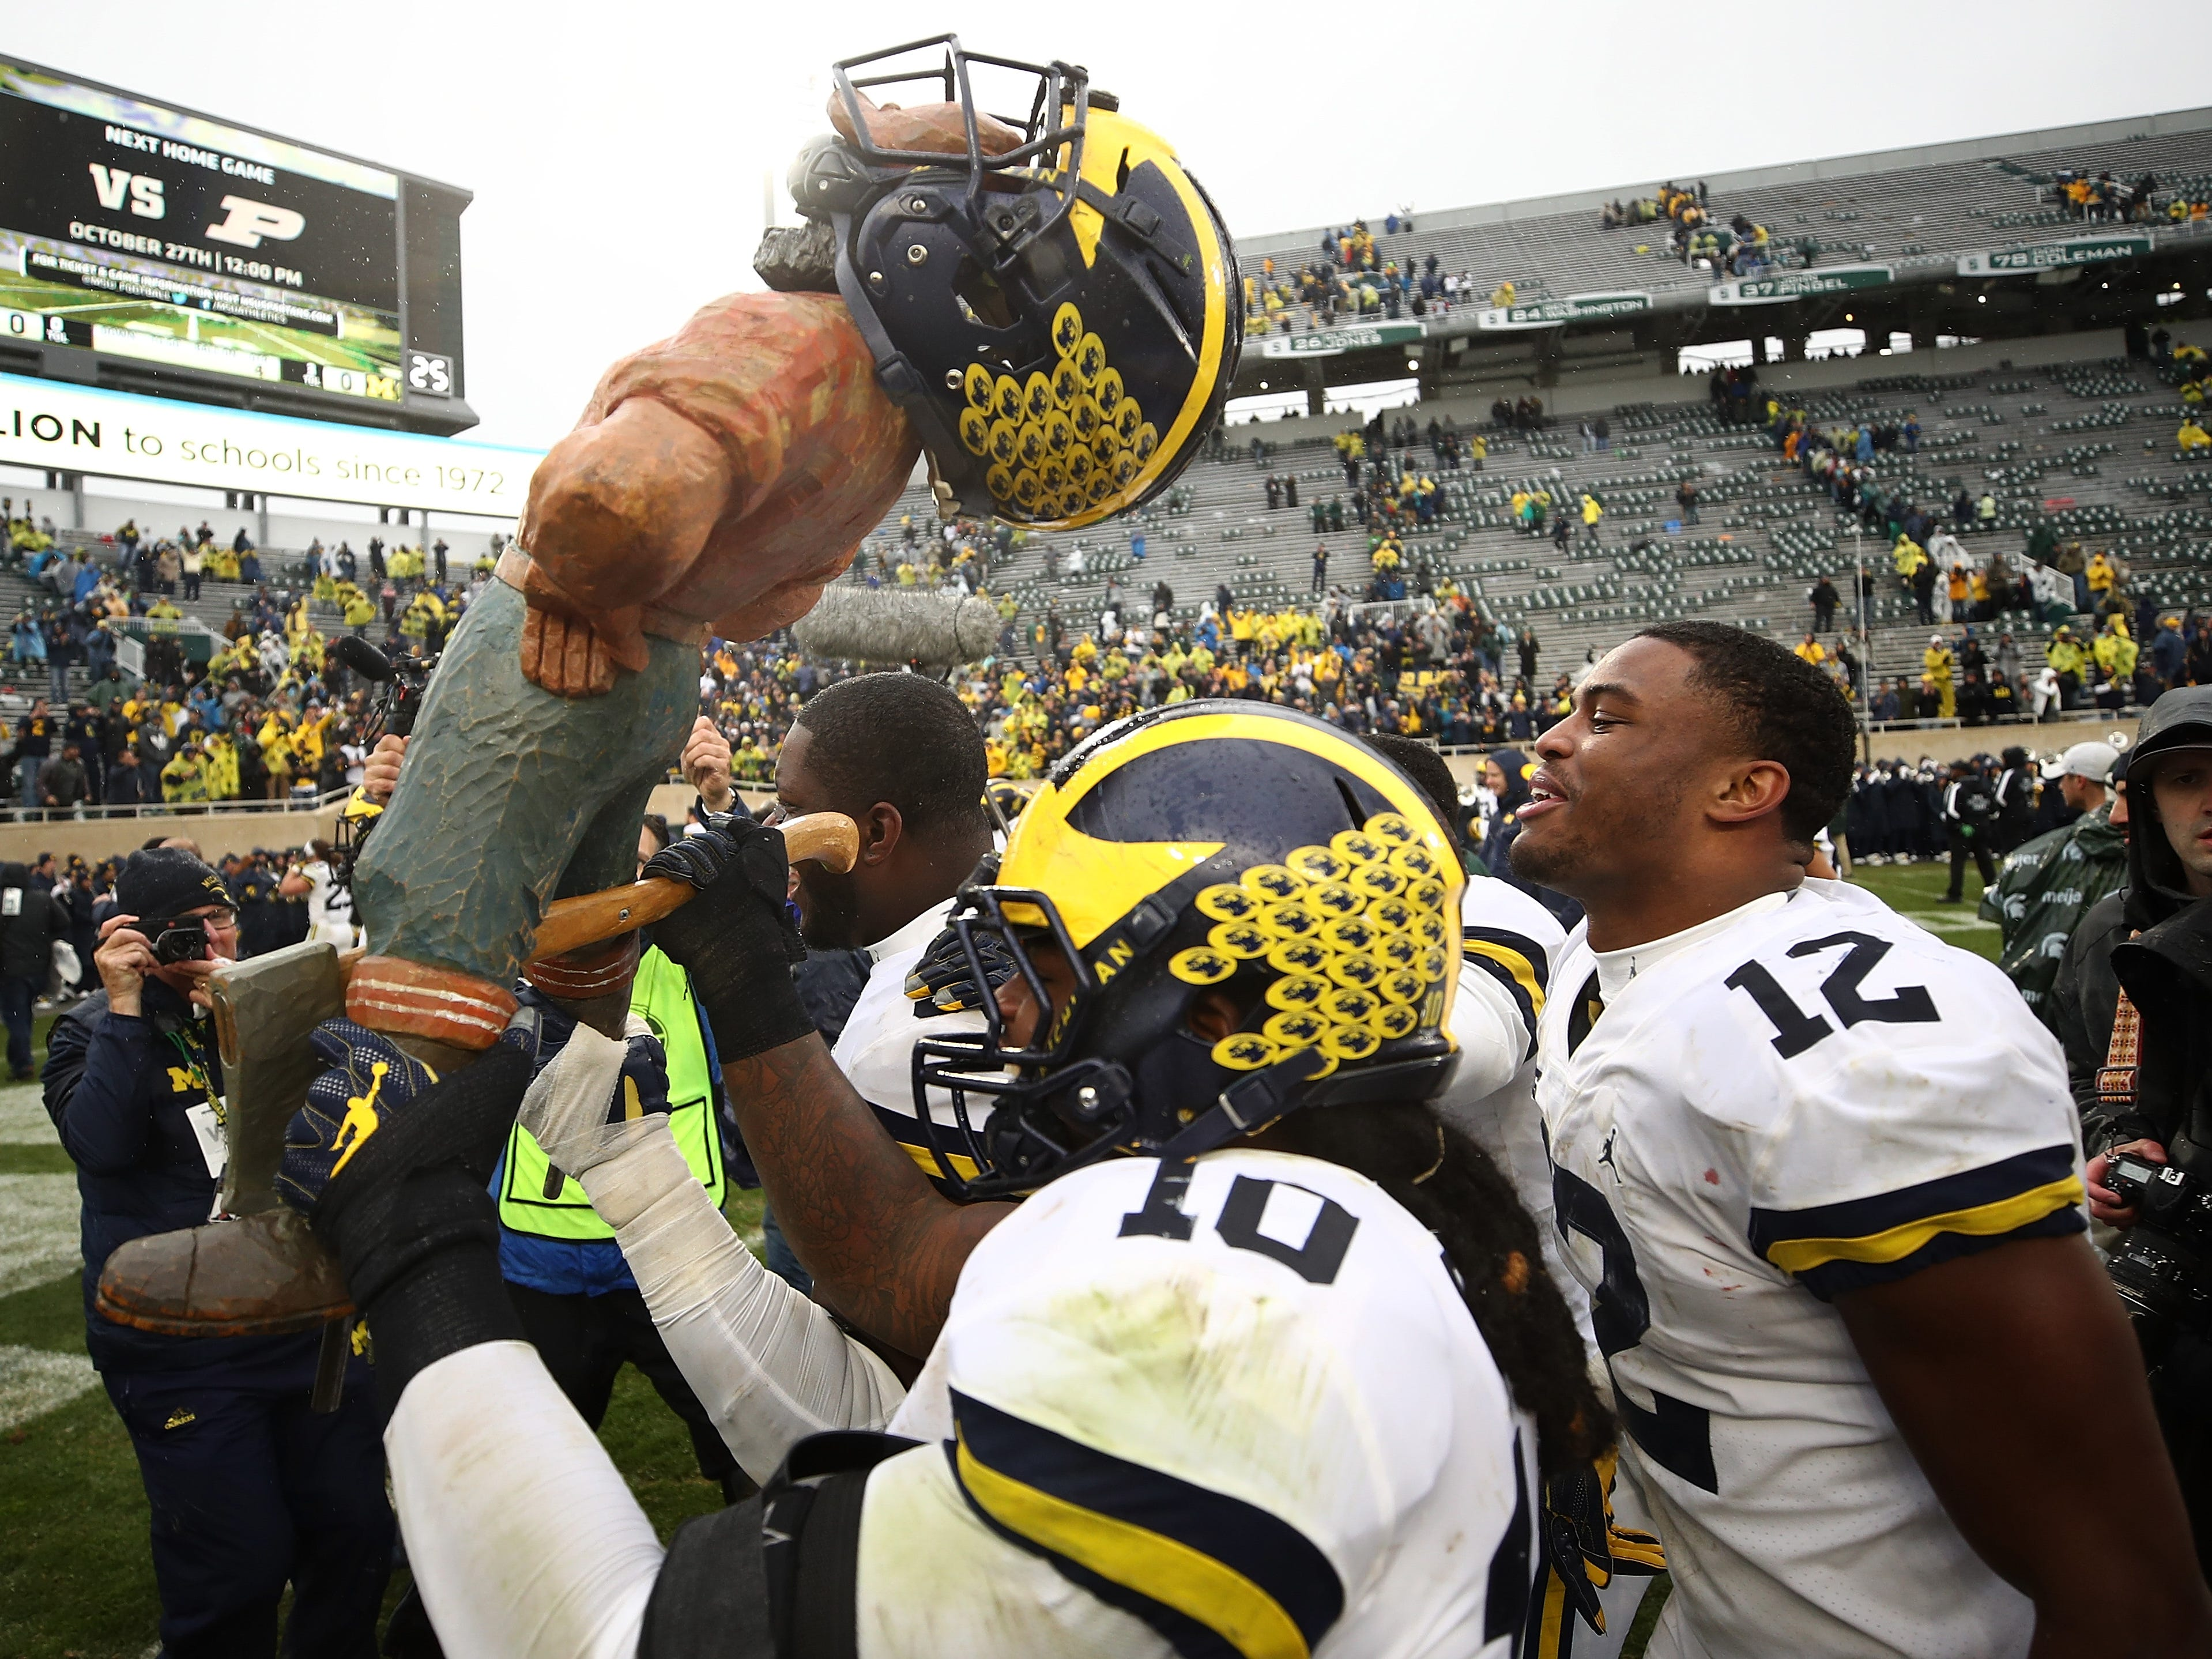 Paul Bunyan Trophy: Michigan players carry the Paul Bunyan Trophy off the field after beating Michigan State, 21-7, at Spartan Stadium on Oct. 20.